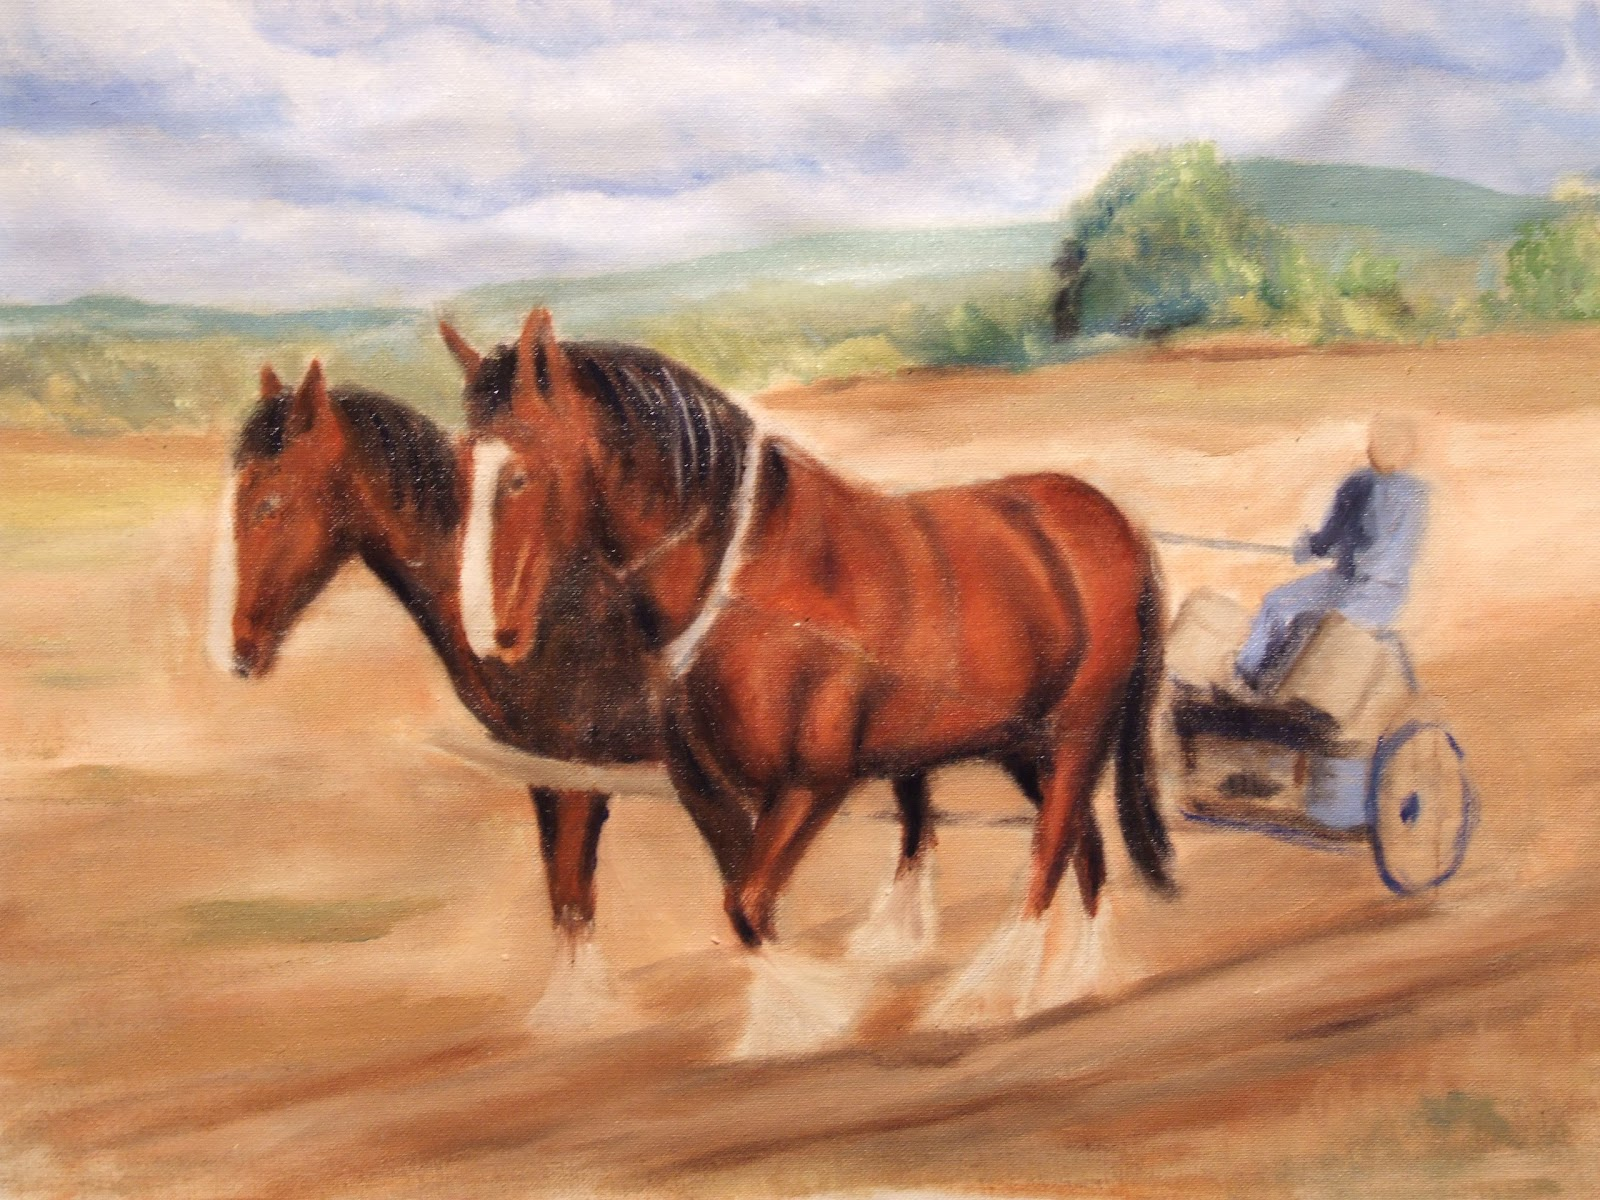 Plough horse oil painting step 5